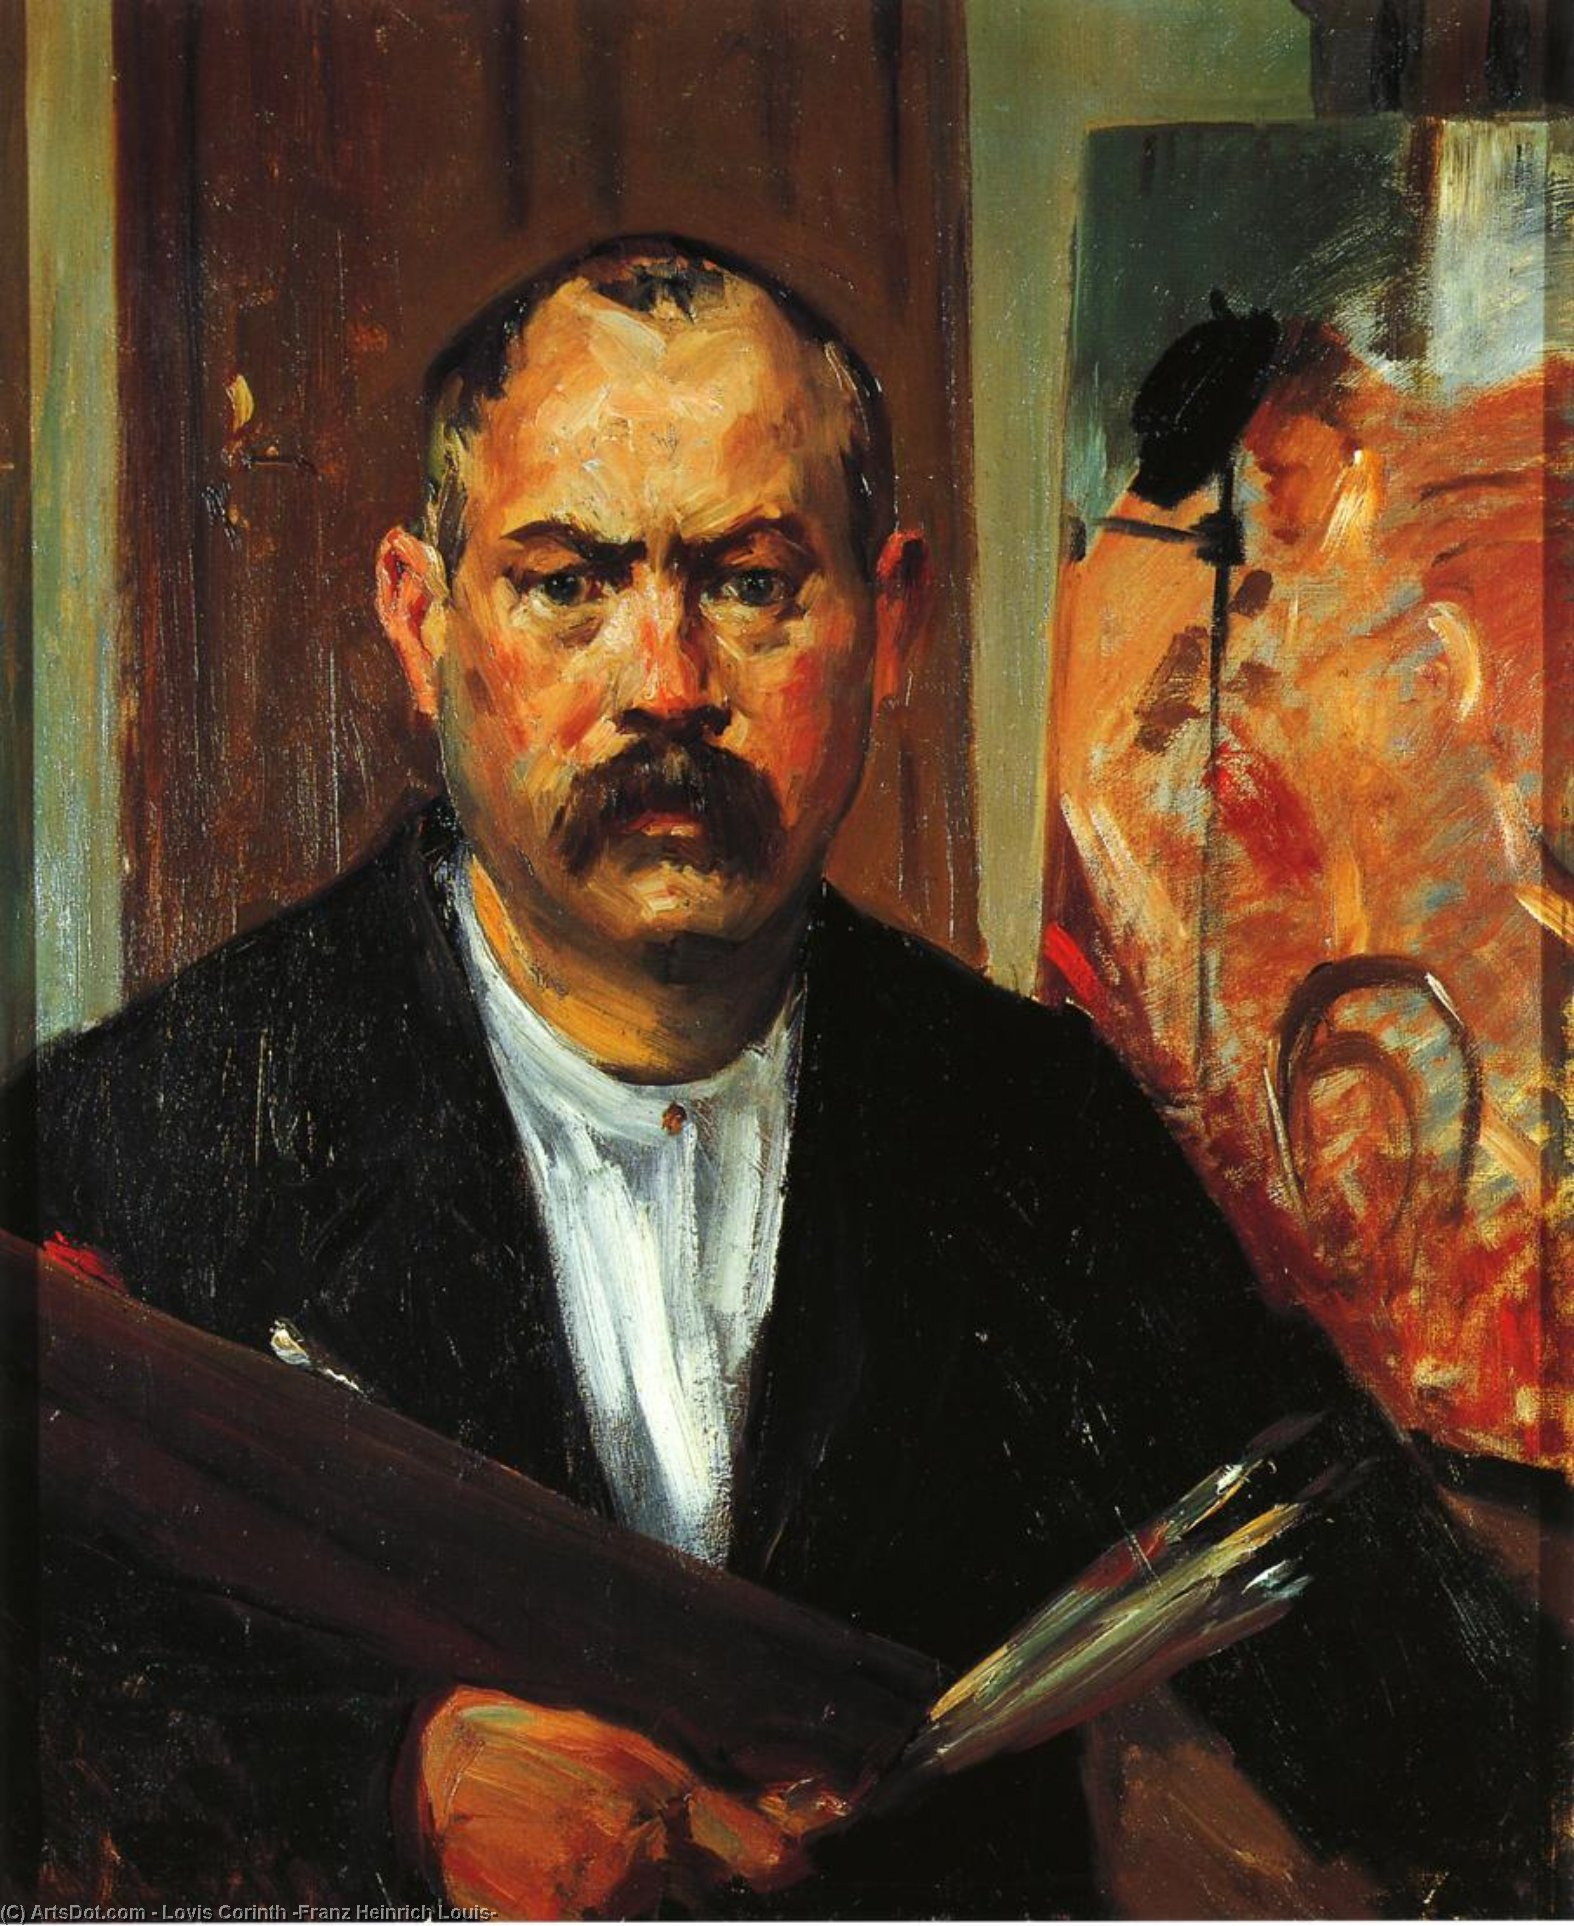 Self Portrait without Collar, Oil On Canvas by Lovis Corinth (Franz Heinrich Louis) (1858-1925, Netherlands)